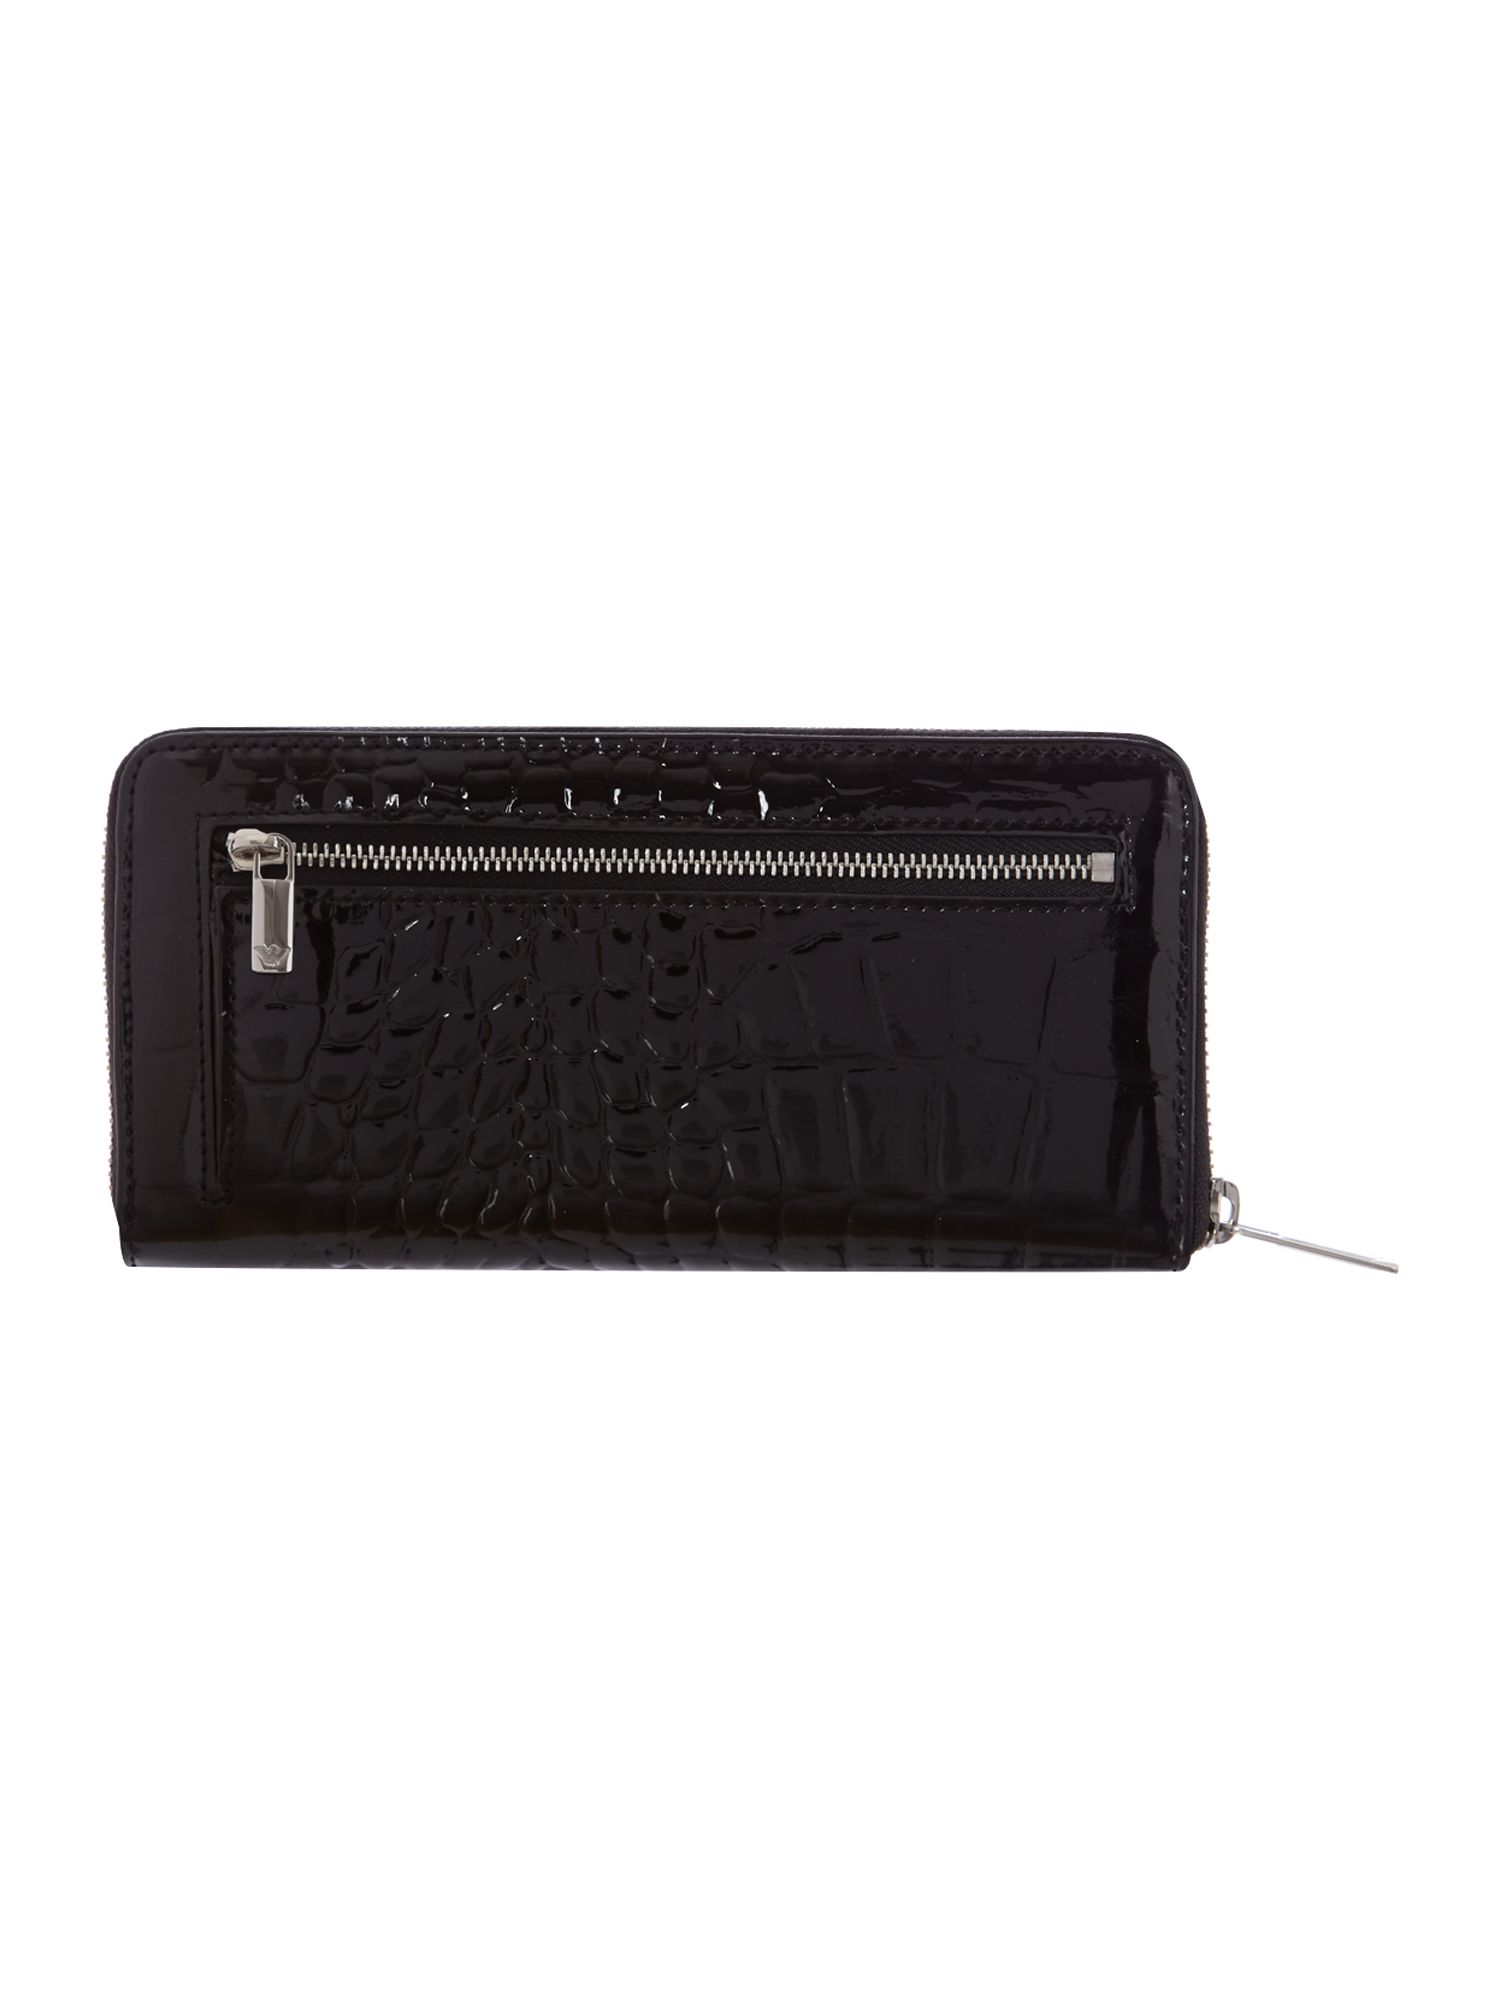 Black patent croc ziparound purse